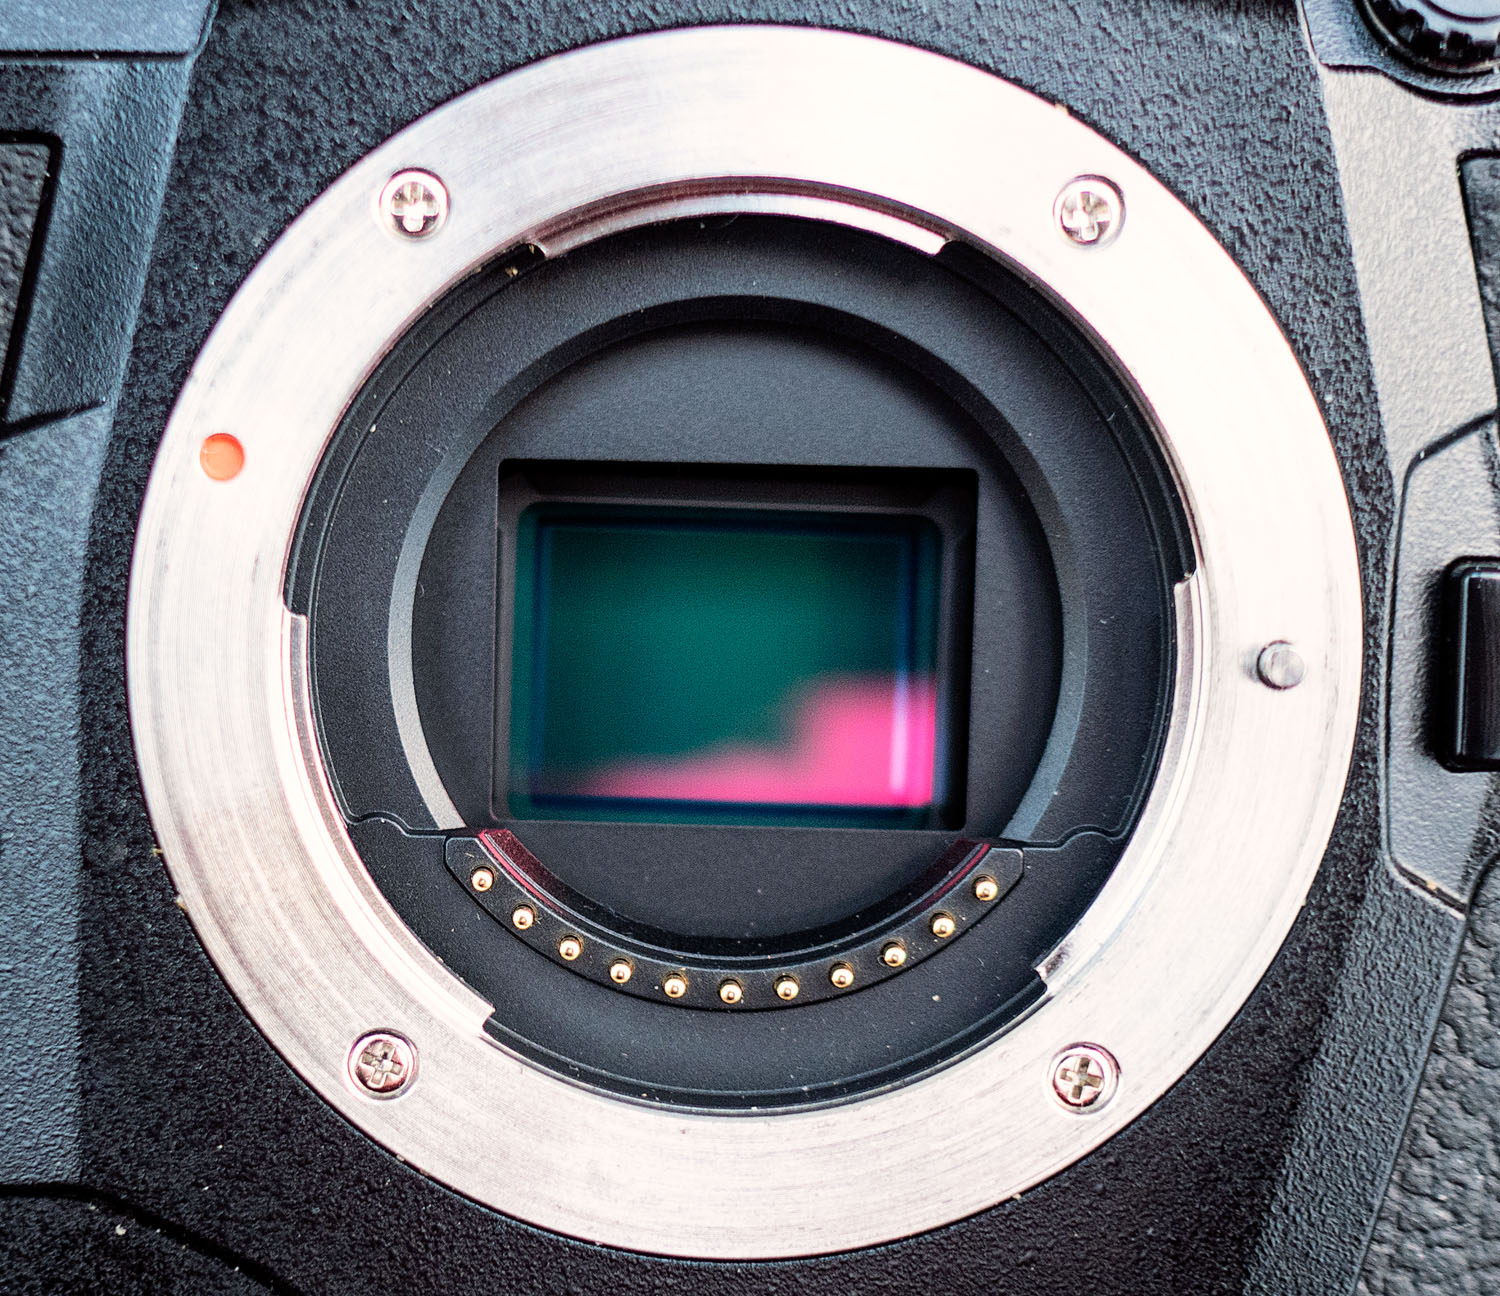 Image sensor from an Olympus EM1X